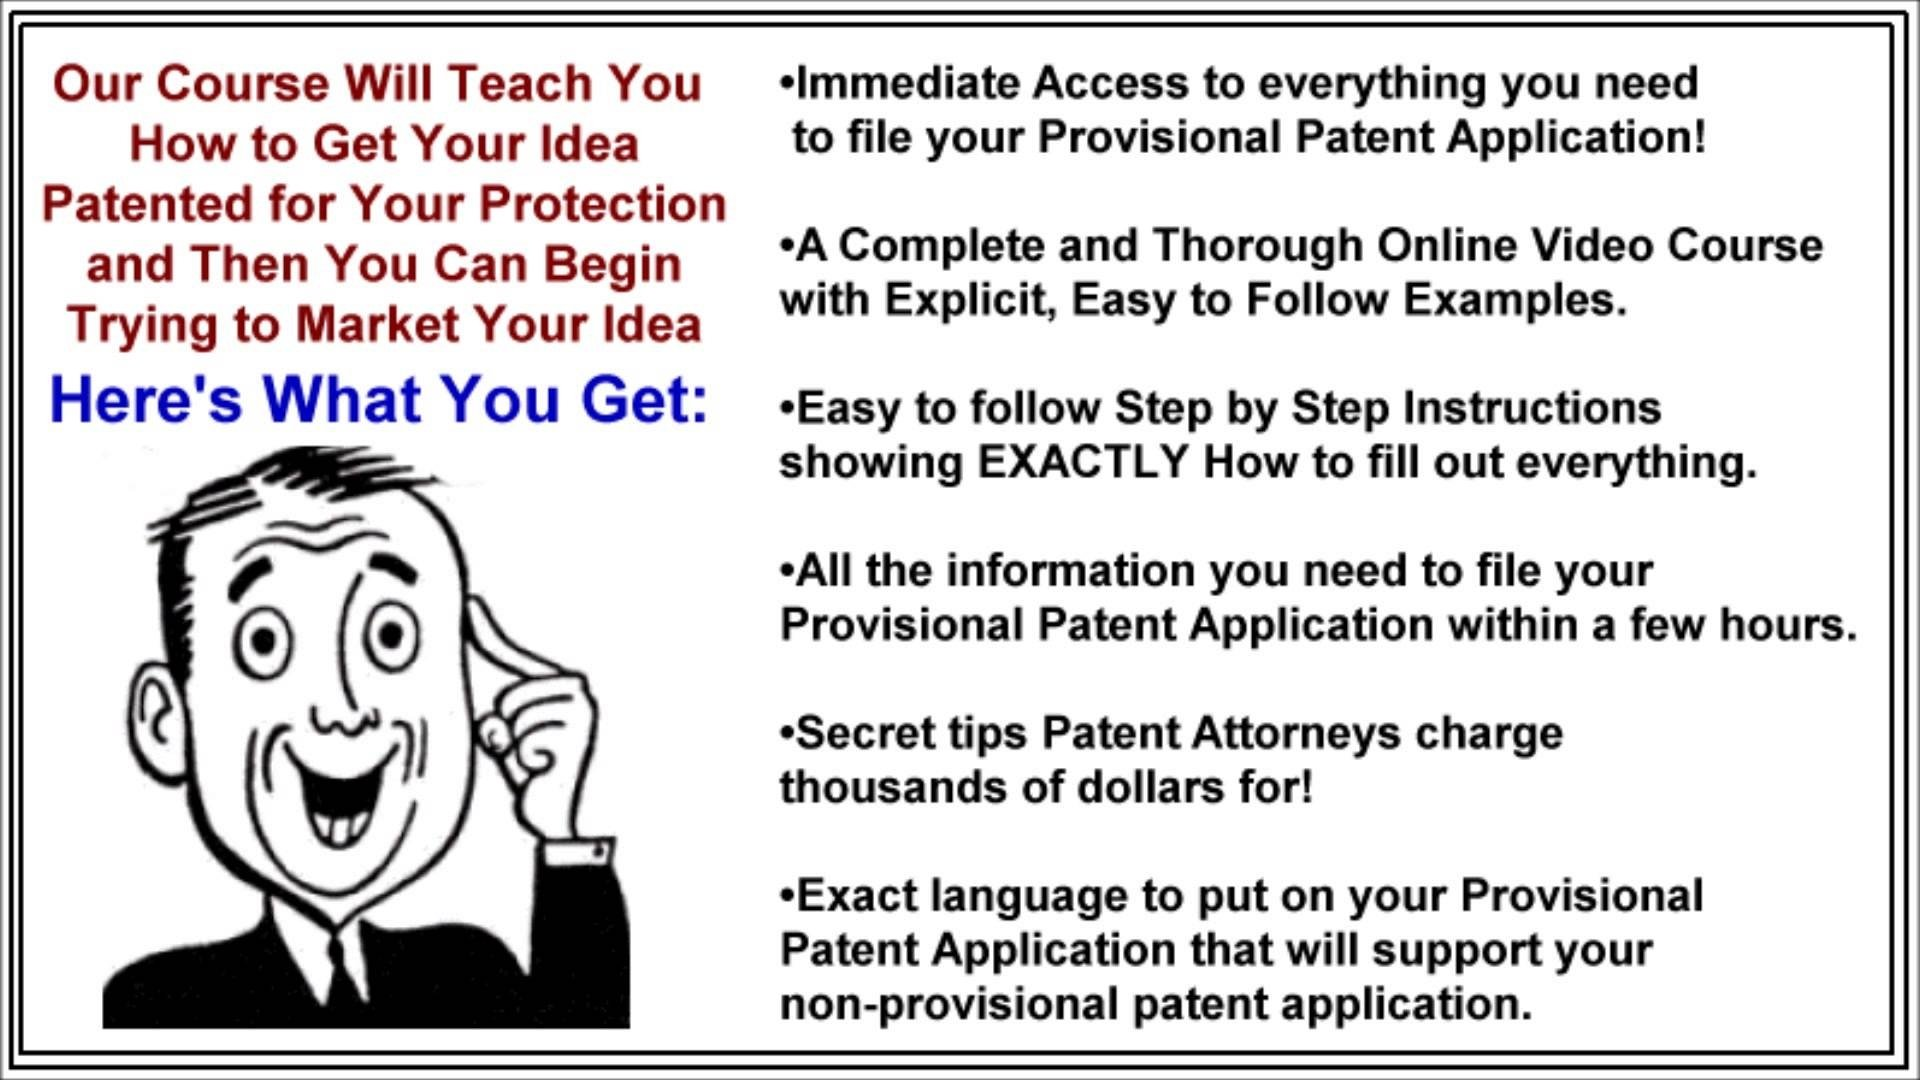 10 Elegant Can An Idea Be Patented how to patent your own idea get a patent without a lawyer youtube 5 2020